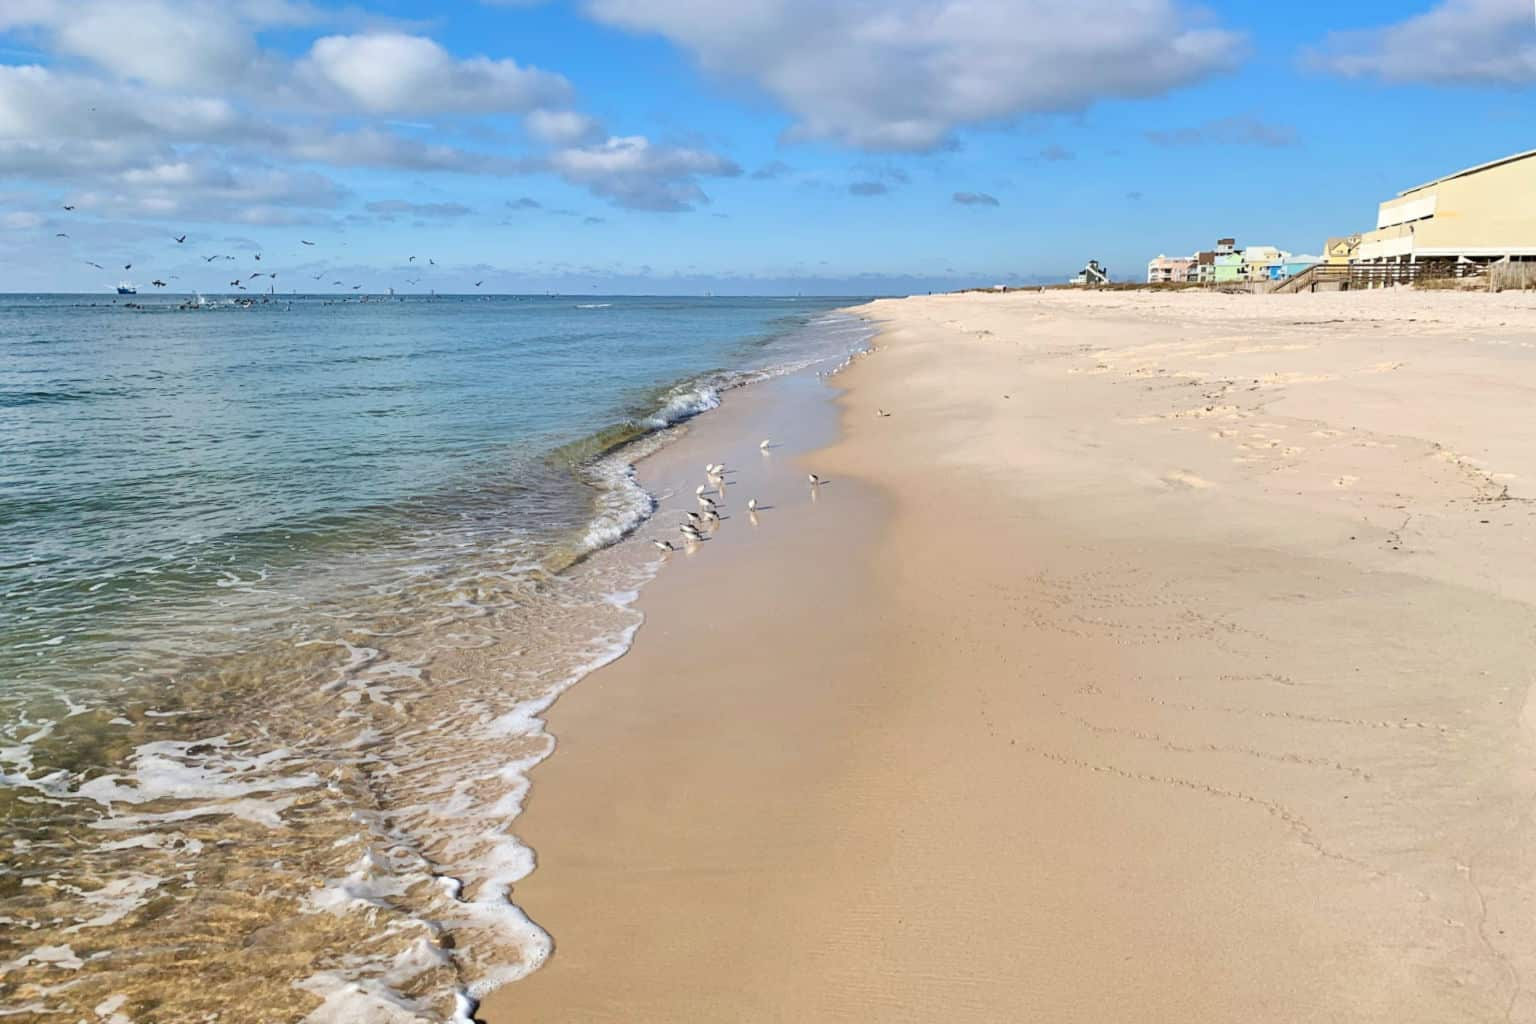 Gulf Shores beaches with beach birds in the background